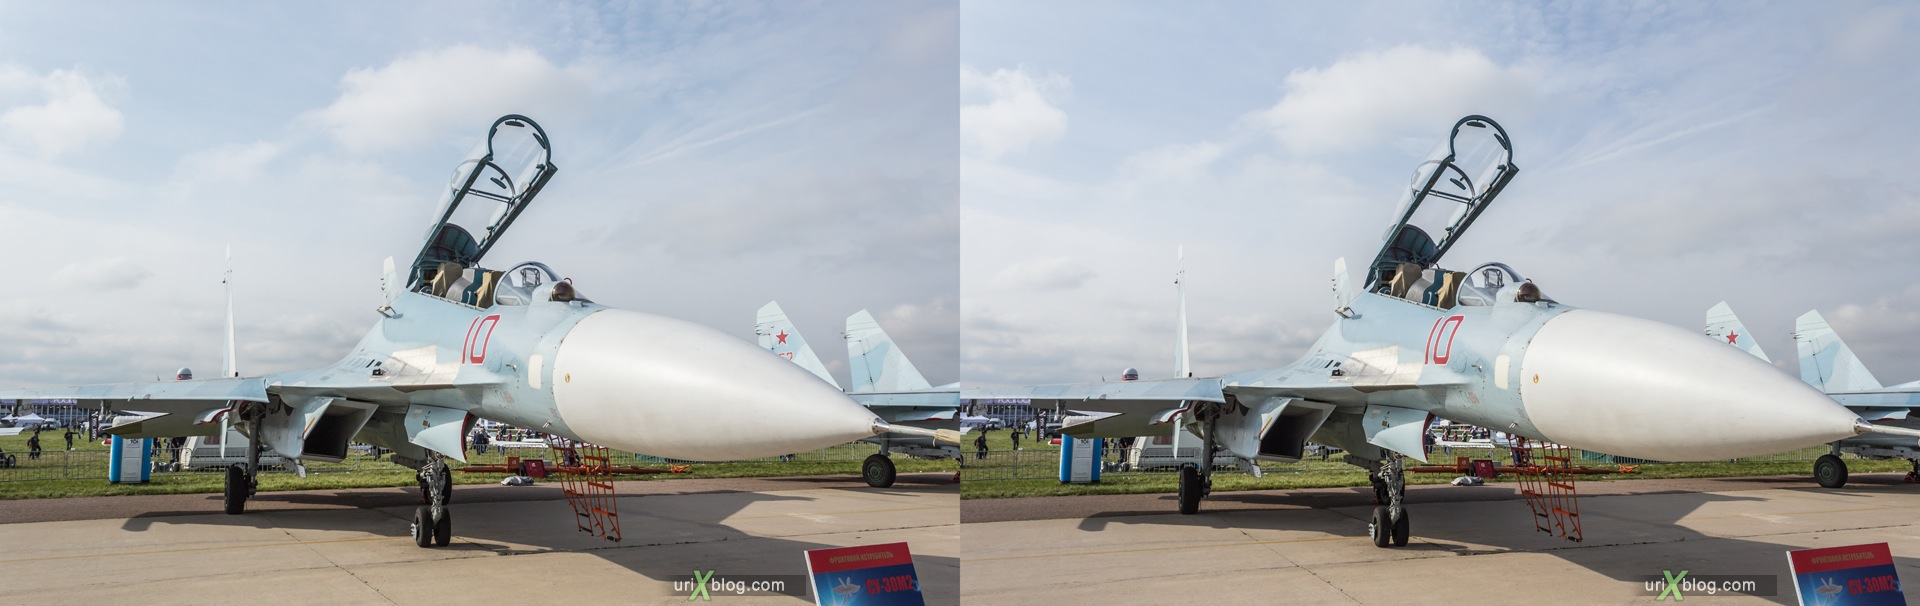 2013, Su-30M2, MAKS, International Aviation and Space Salon, Russia, Soviet, USSR, Ramenskoye airfield, airplane, 3D, stereo pair, cross-eyed, crossview, cross view stereo pair, stereoscopic